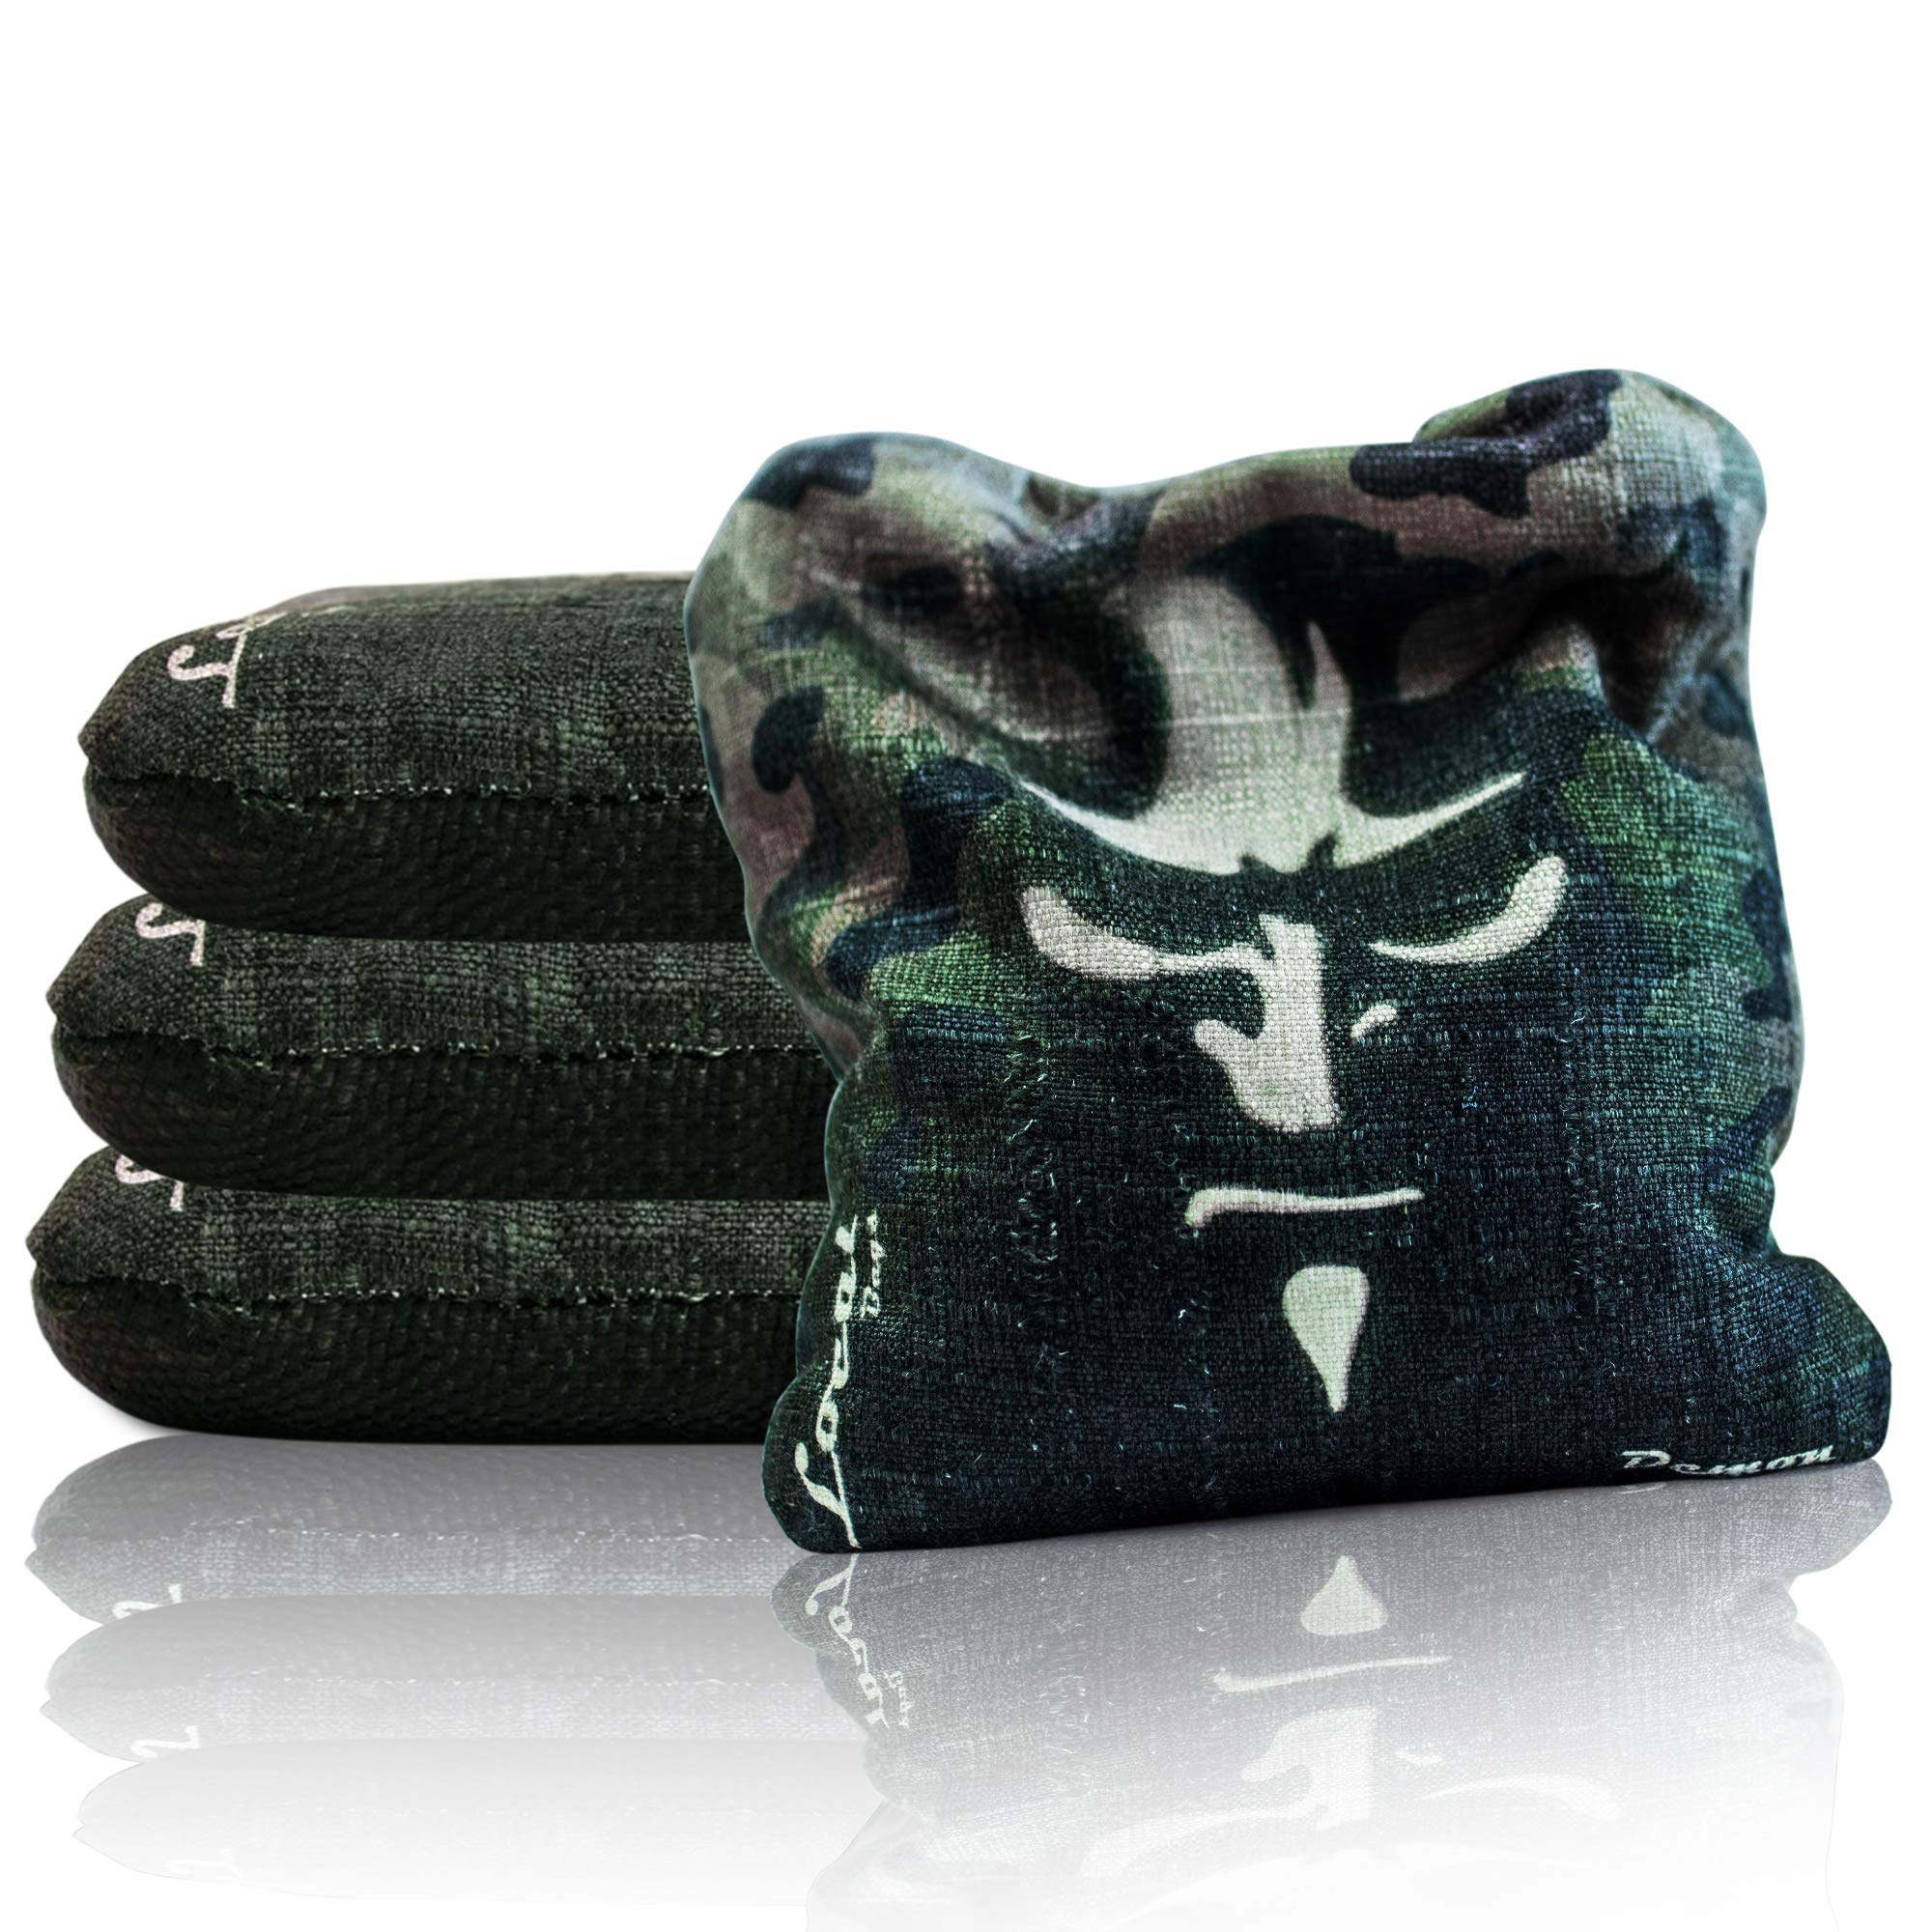 Local Bags Cornhole - Demon Series - Set of 4 Bags- ACL Approved Resin Filled - Double Sided - Slow Side/Go Side Made in USA (Camo) by Local Bags